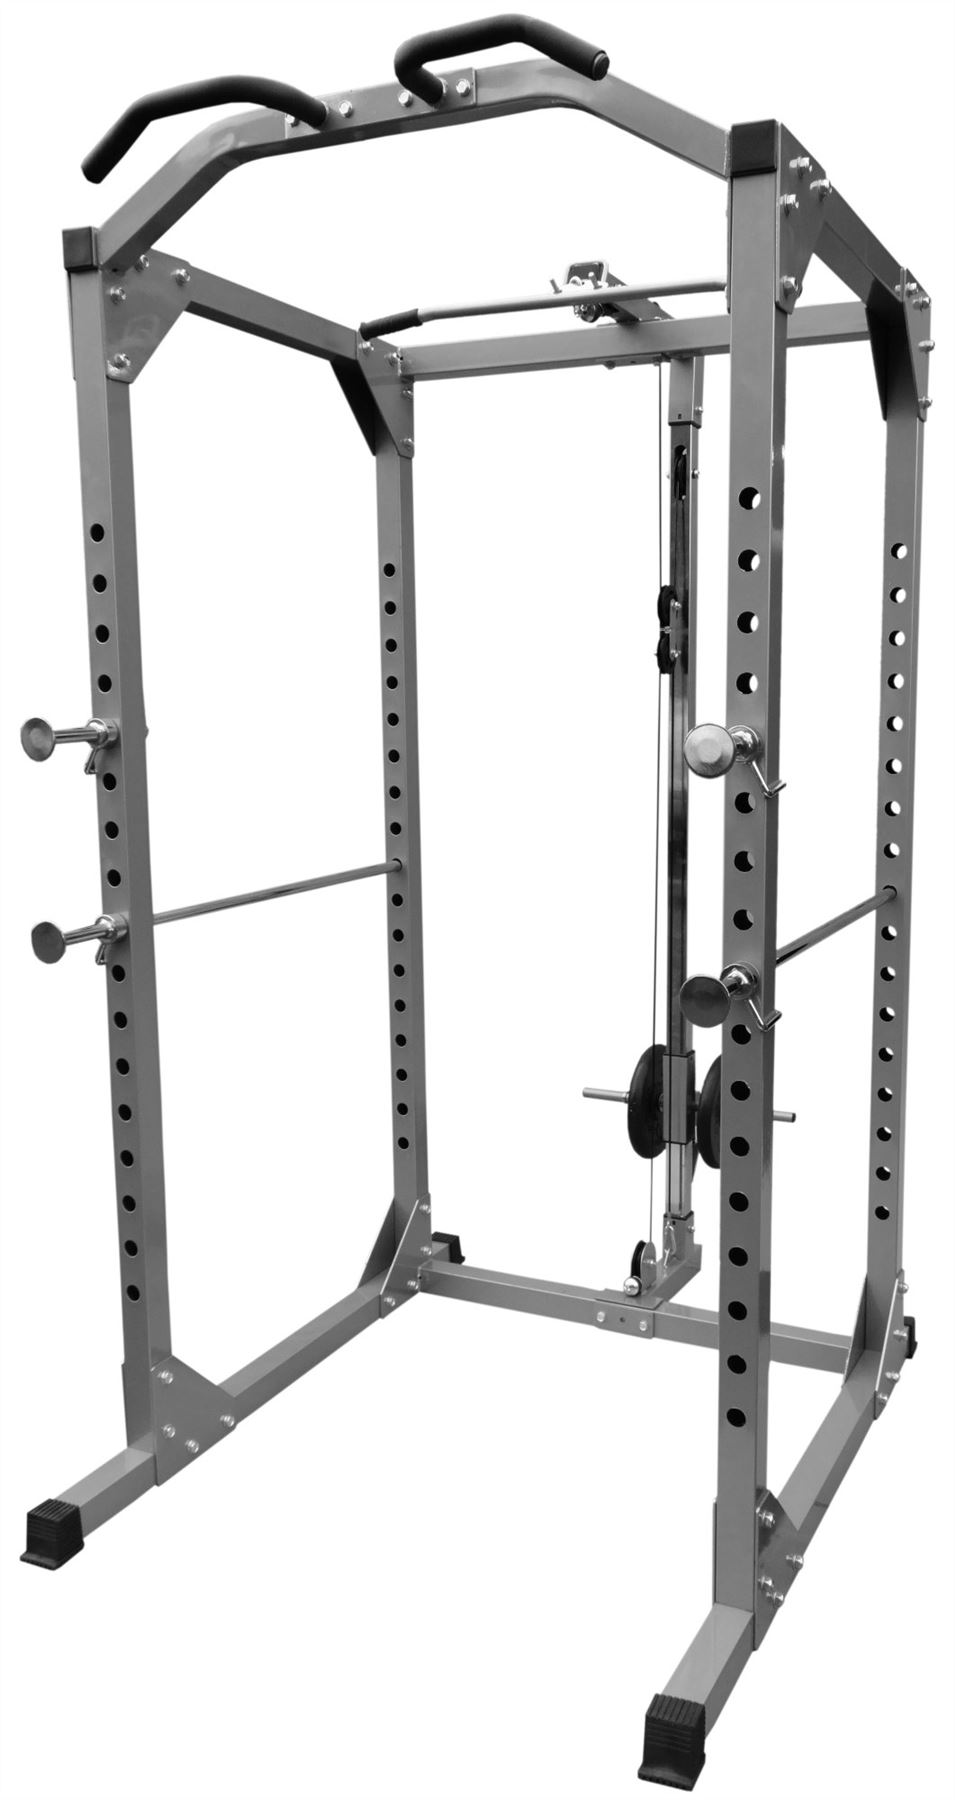 bodyrip heavy duty solid power rack squat gym cage pull. Black Bedroom Furniture Sets. Home Design Ideas